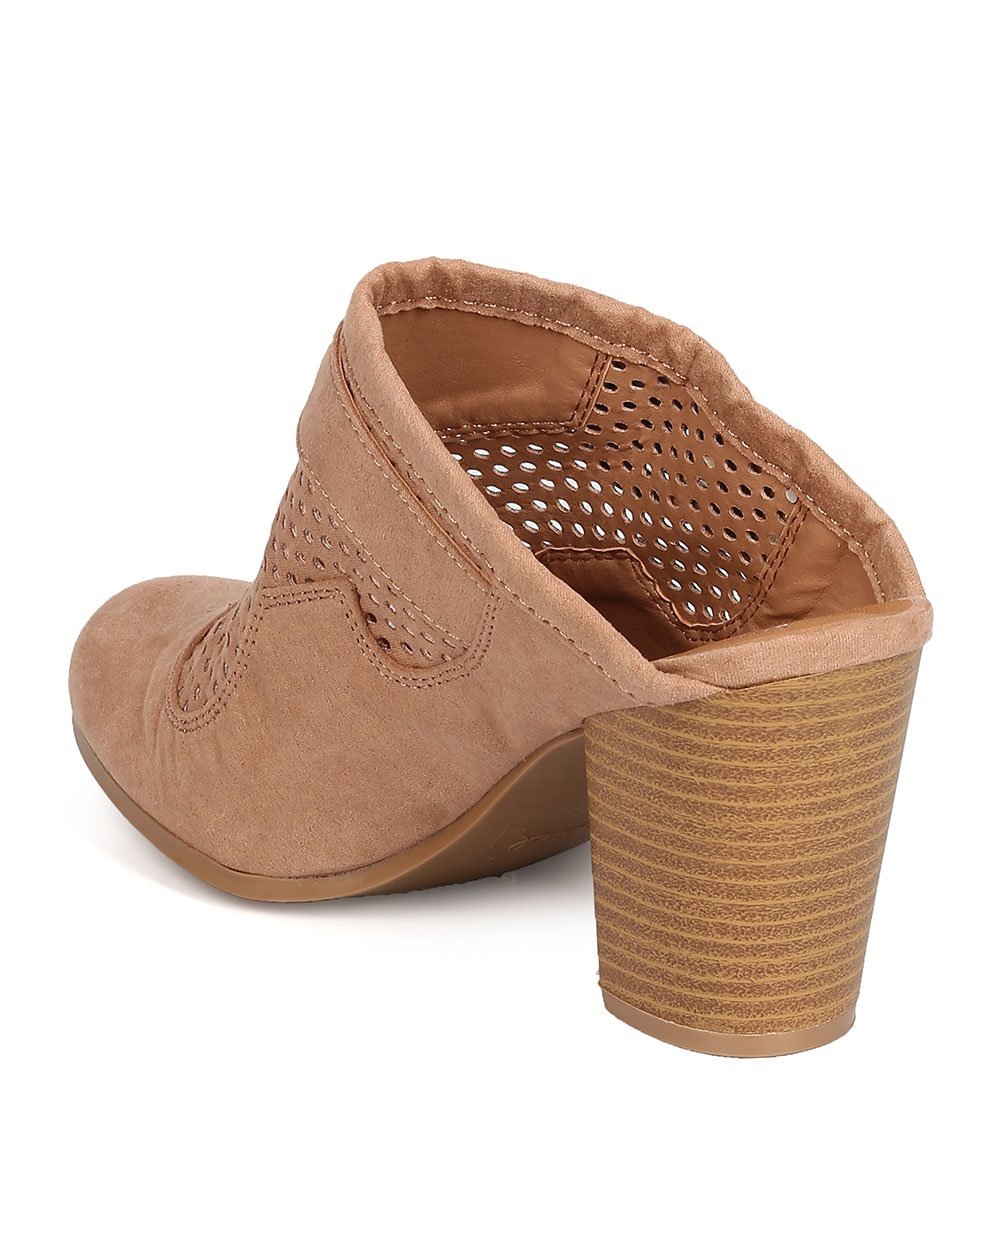 Qupid Women Faux Suede Perforated Buckled Chunky Heel Mule FD91 - Taupe (Size: 7.5) by Qupid (Image #3)